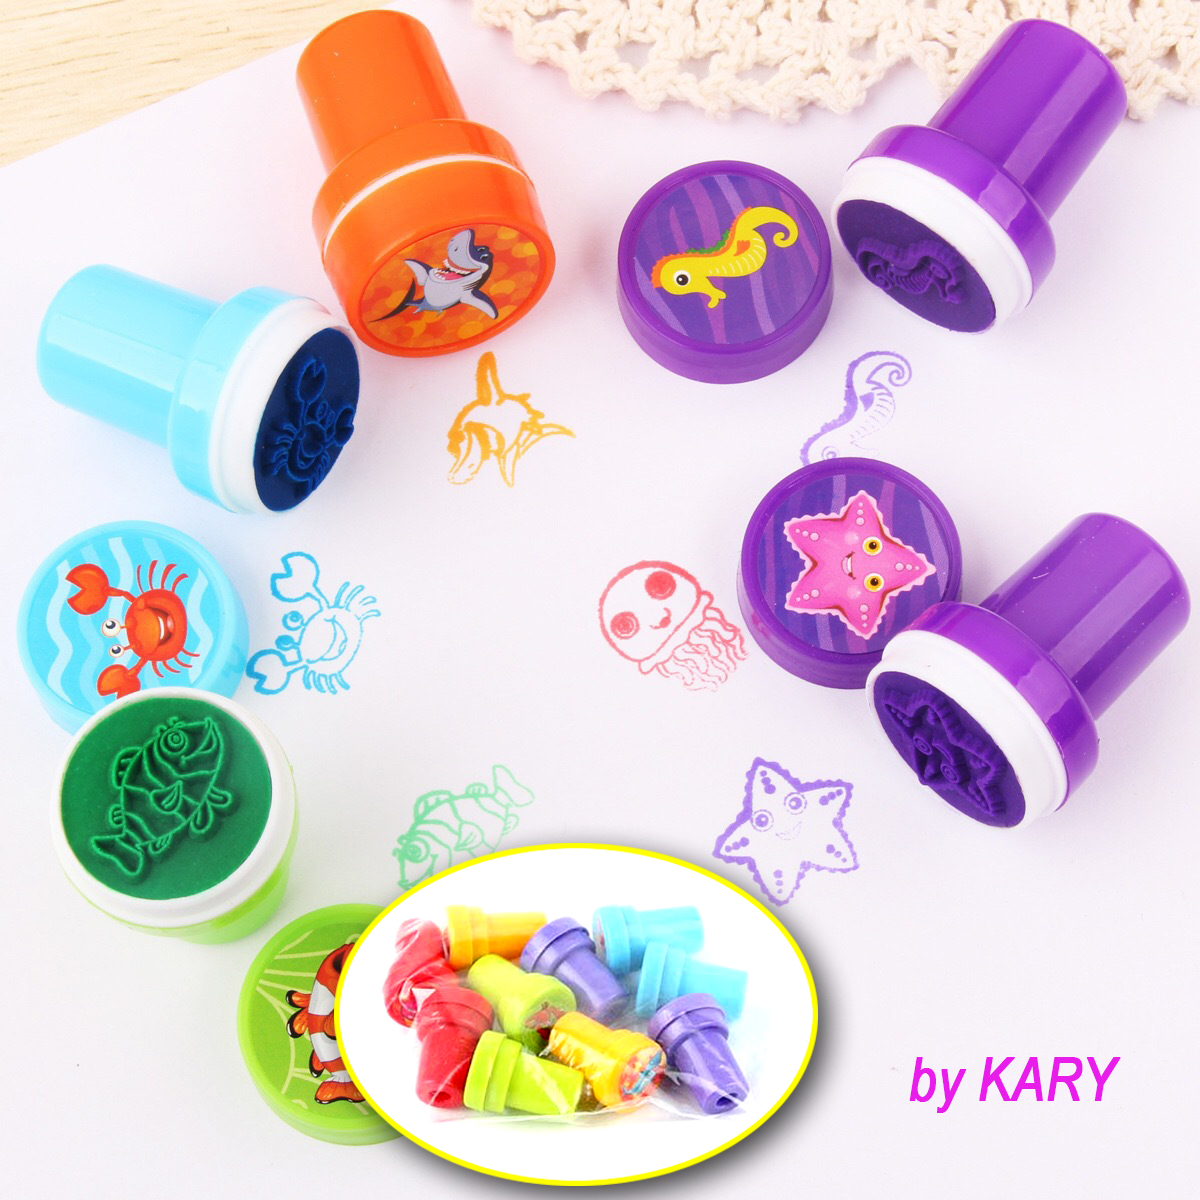 10pcs-set-children-toy-stamps-cartoon-farm-animals-fruits-kids-seal-scrapbooking-stamper-diy-toys-for-kids-many-styles-to-choose